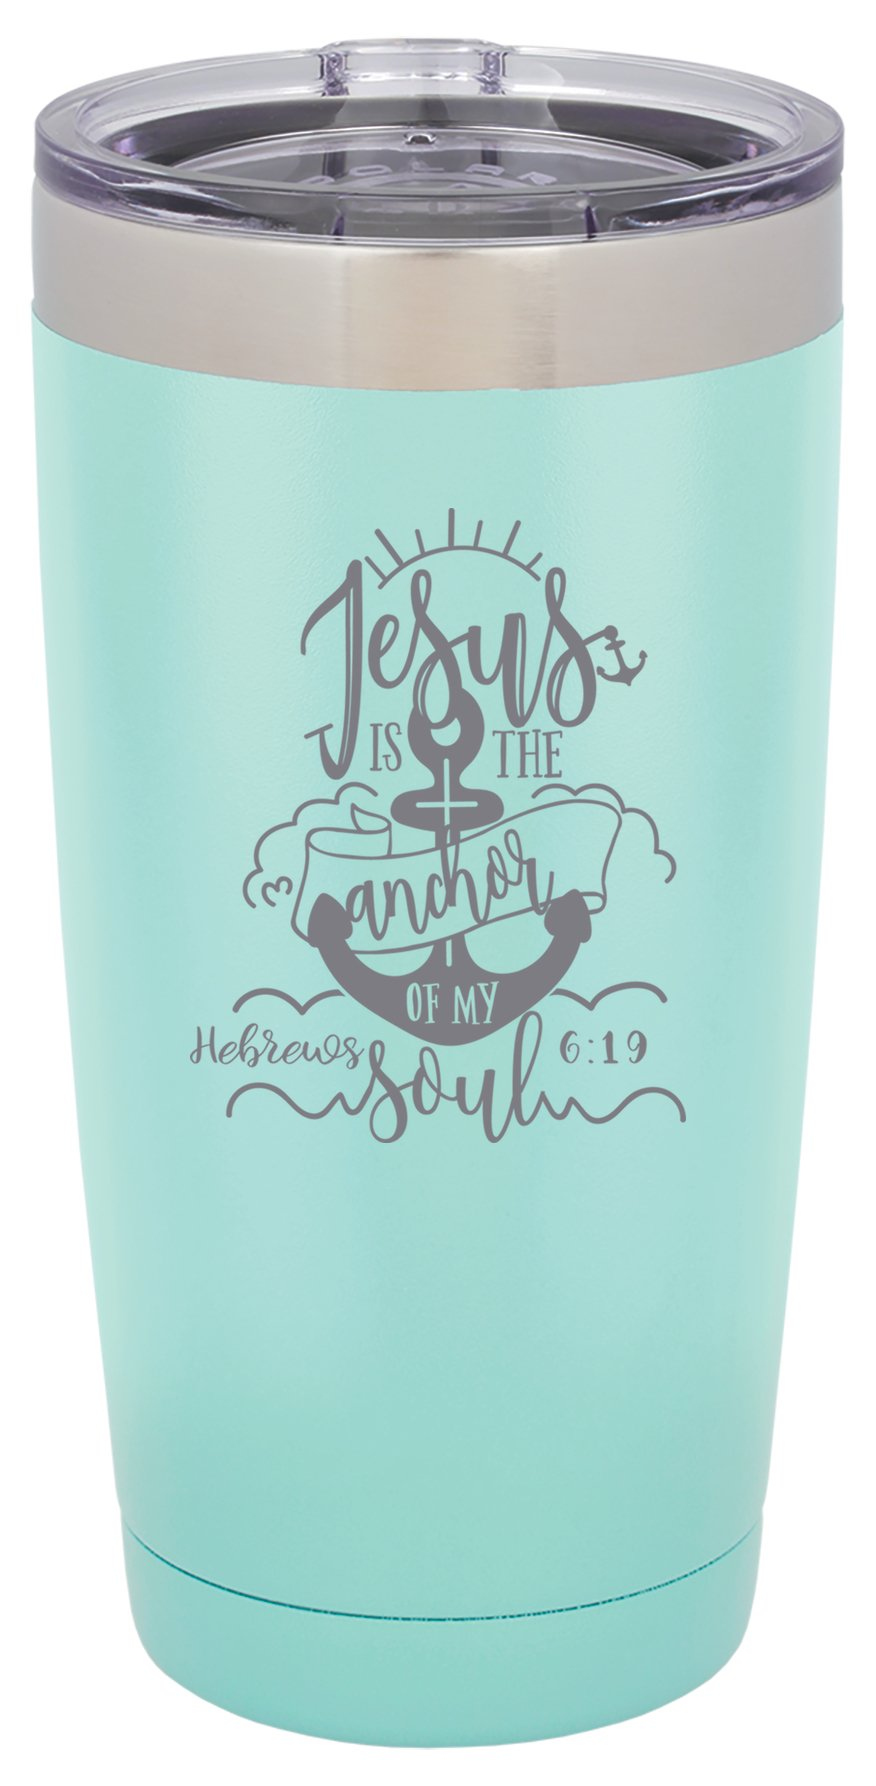 Jesus is the Anchor of My Soul - Hebrews 6:19 - 20 ounce Double wall vacuum insulated tumbler - Tons of colors by Griffco Supply (Light Teal)